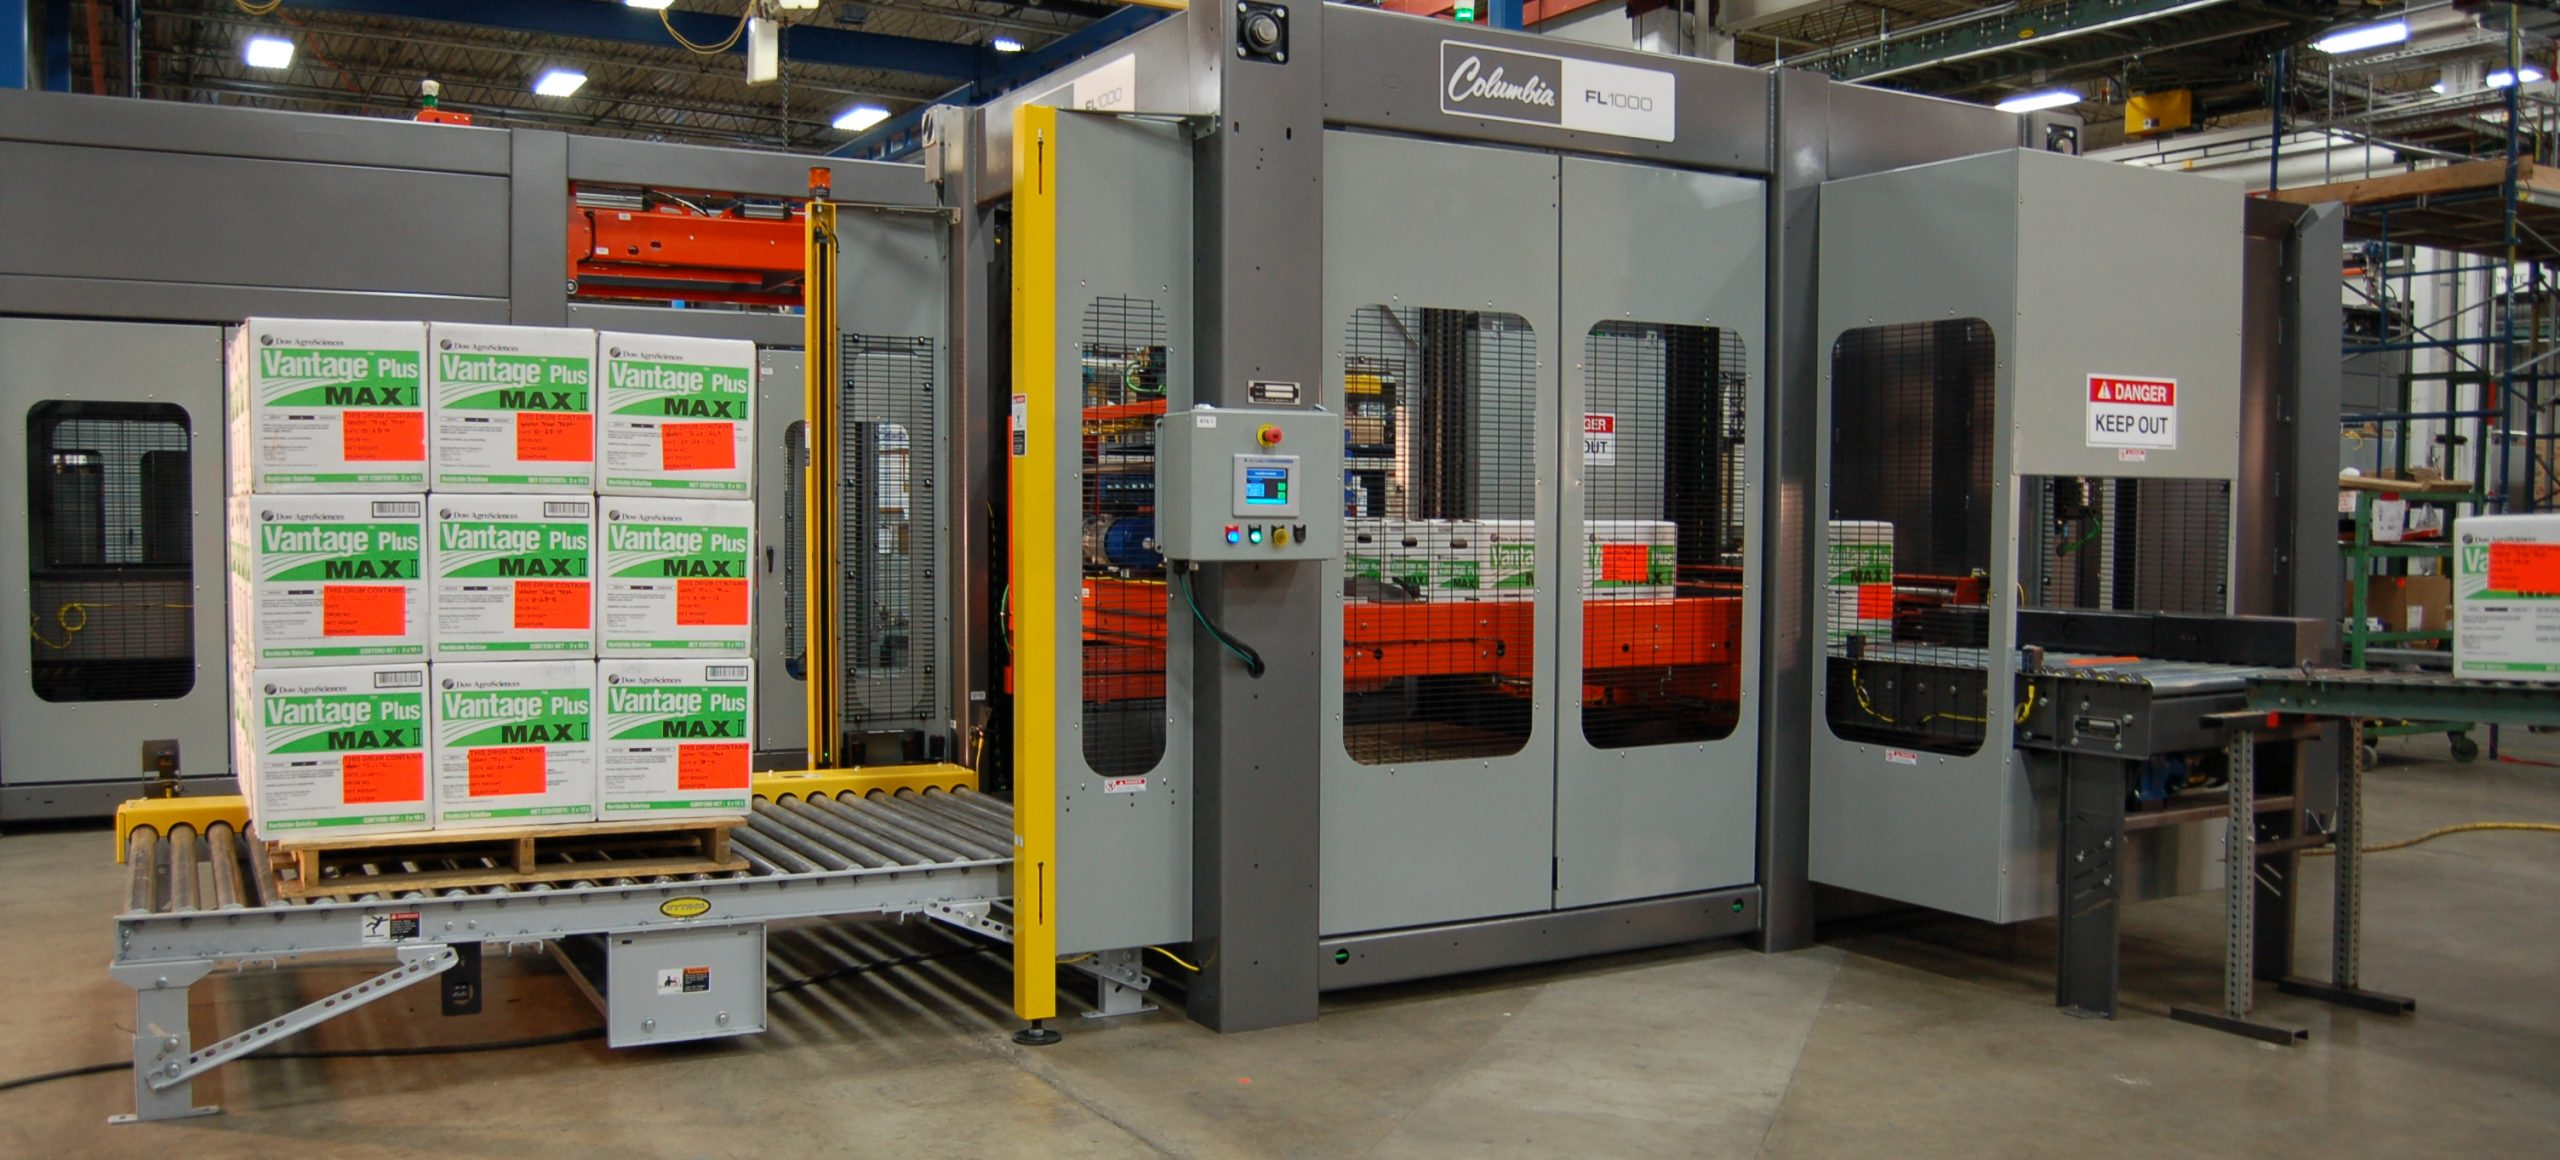 Image of a FL1000 floor level palletizer with stacked cases.